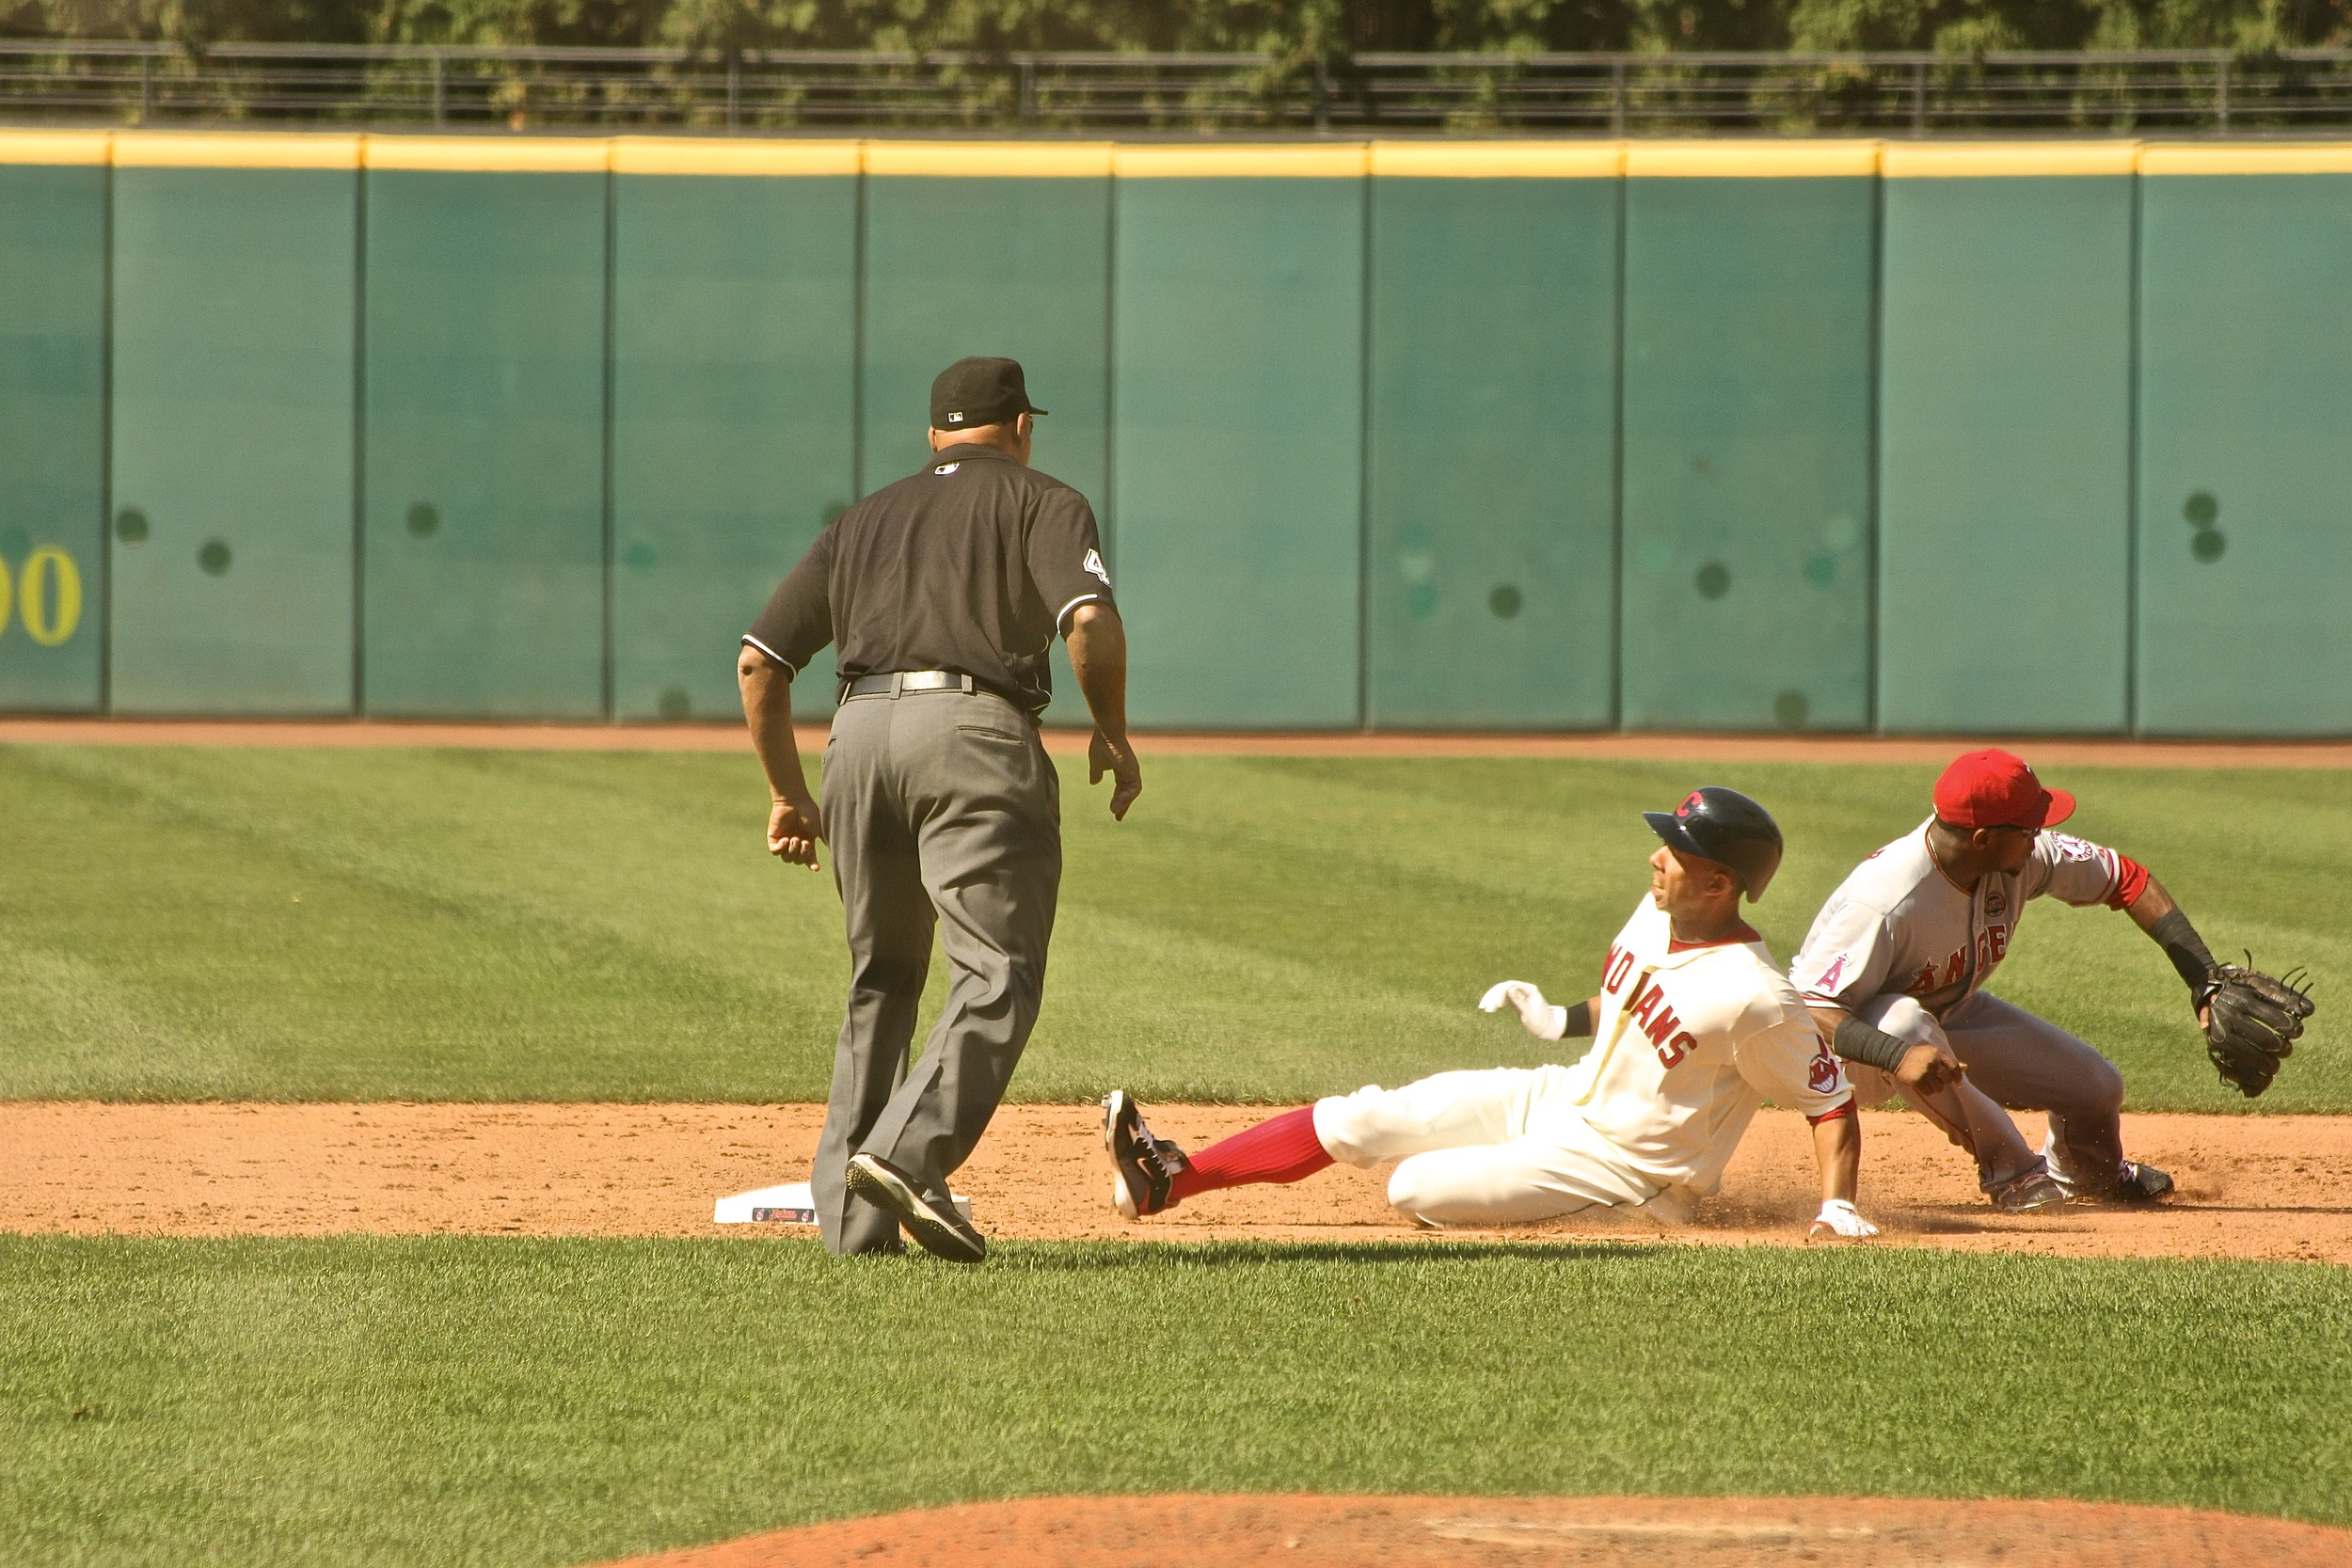 Michael Brantley safe at second